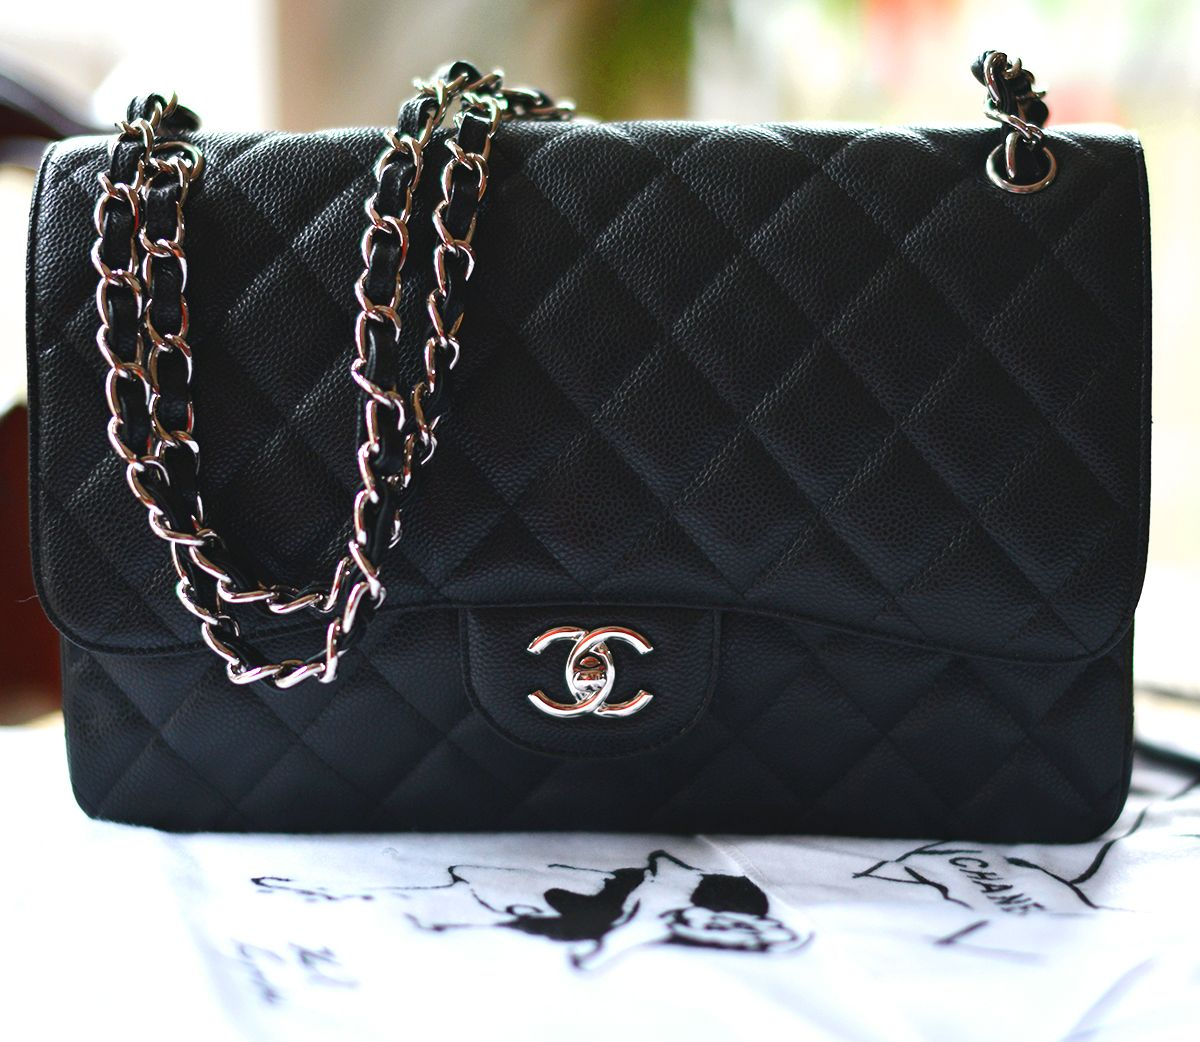 Chanel: Bags of Dreams!